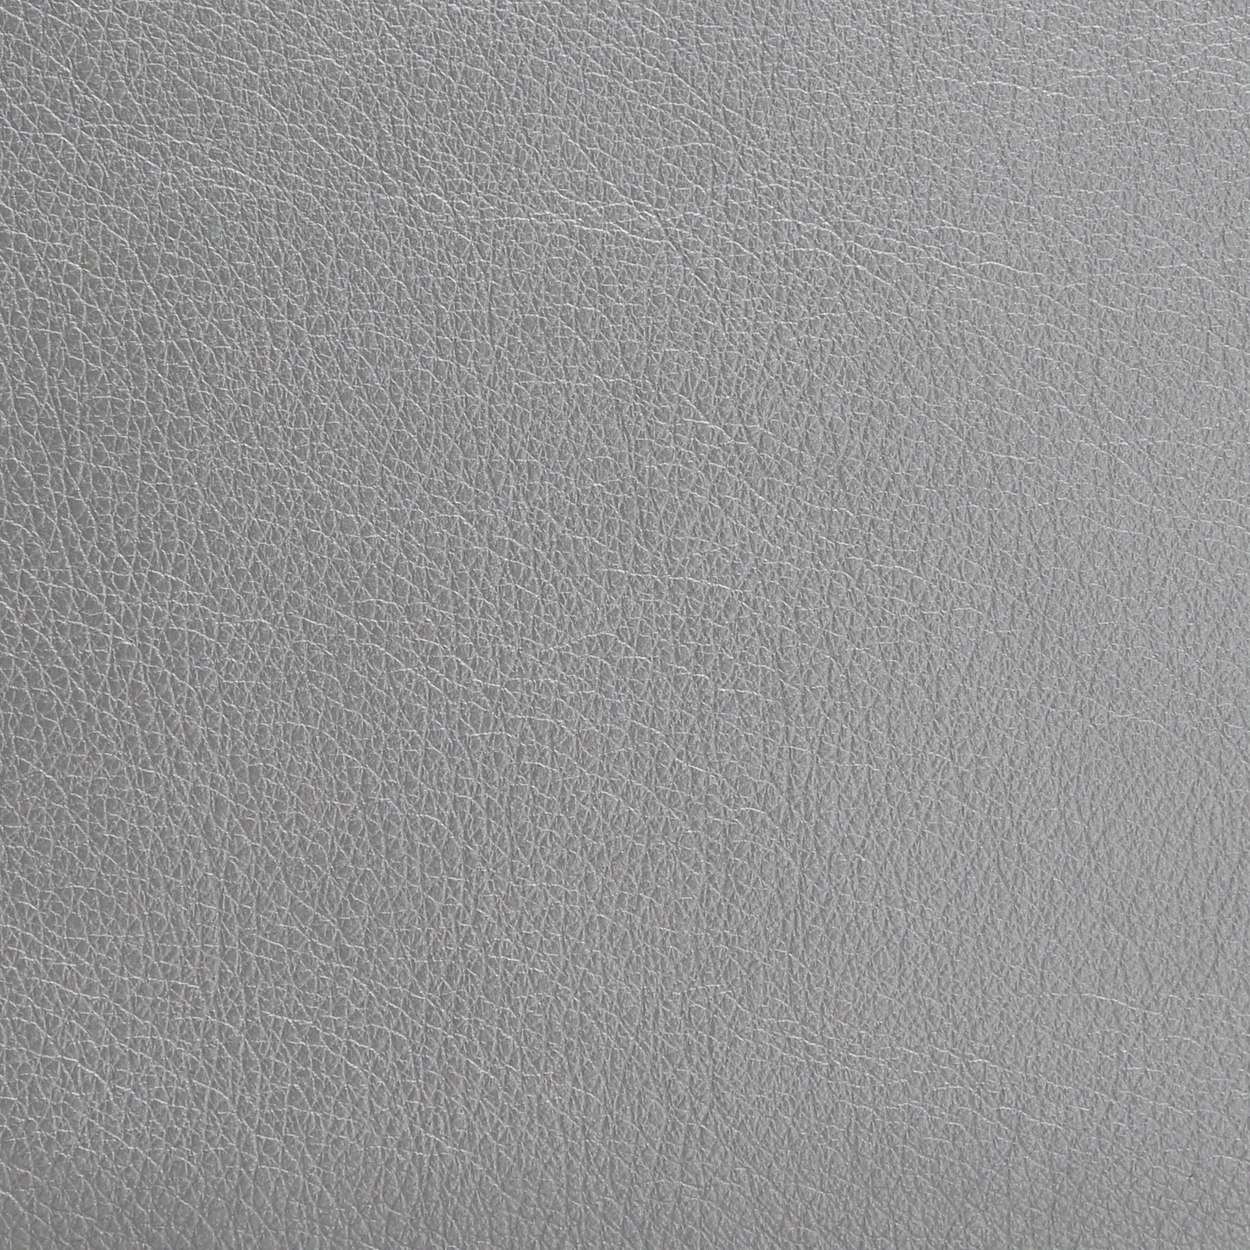 Leather-Pearlescent-Quartz.jpg